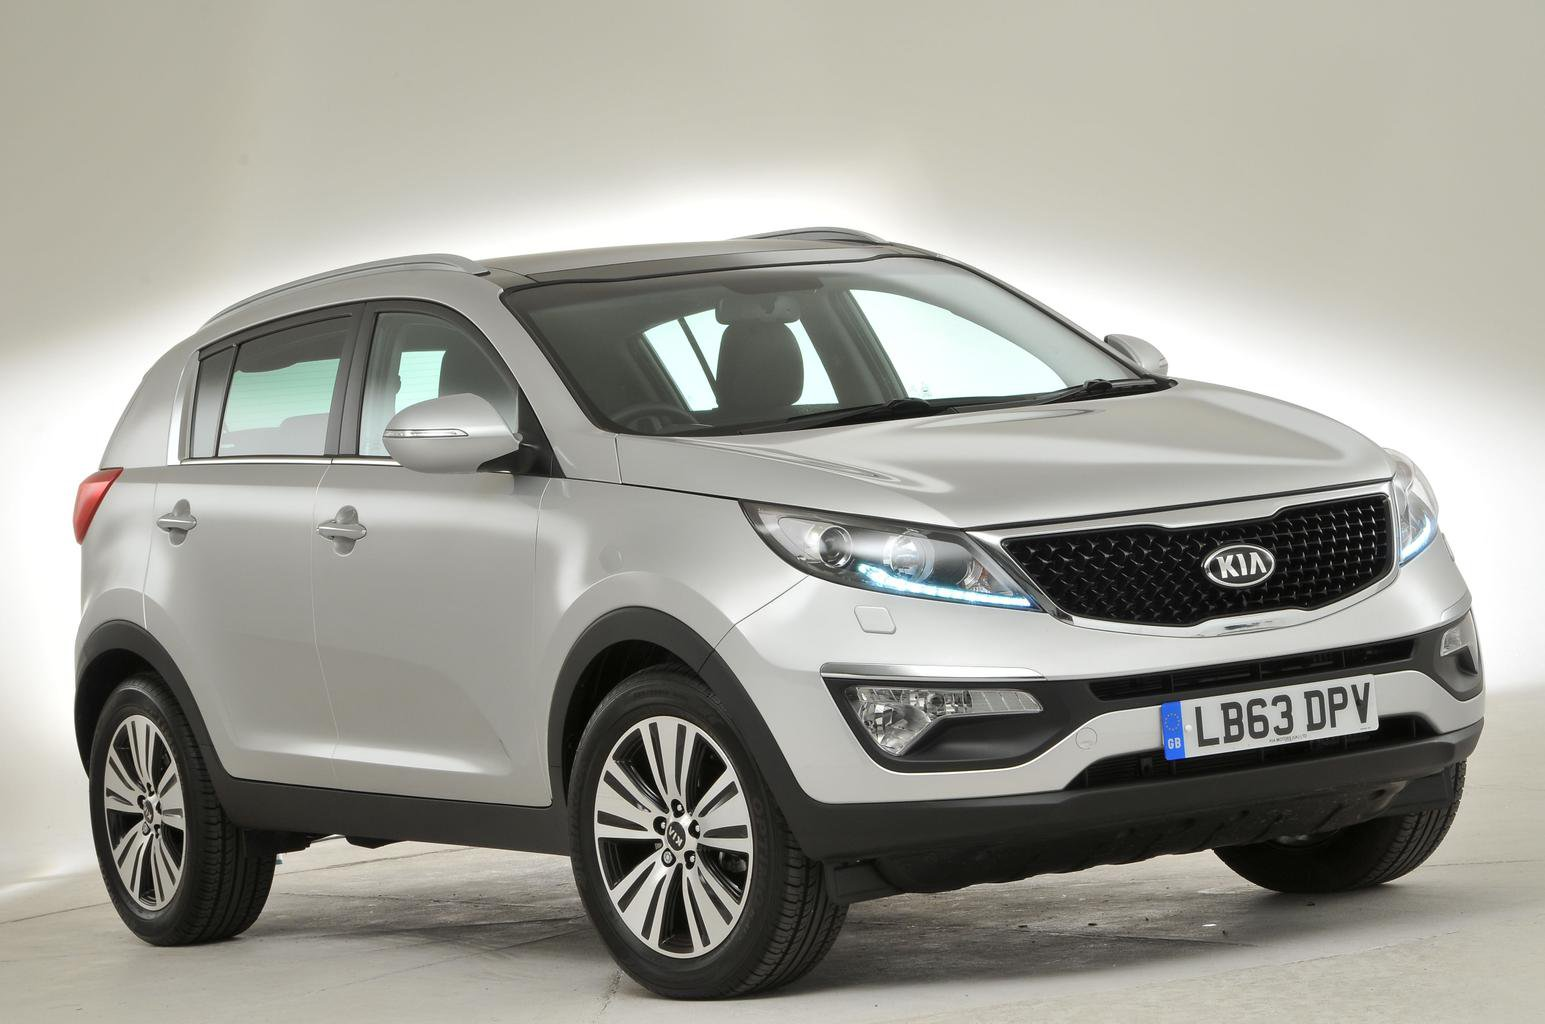 Used test – reliable SUVs: Kia Sportage vs Mazda CX-5